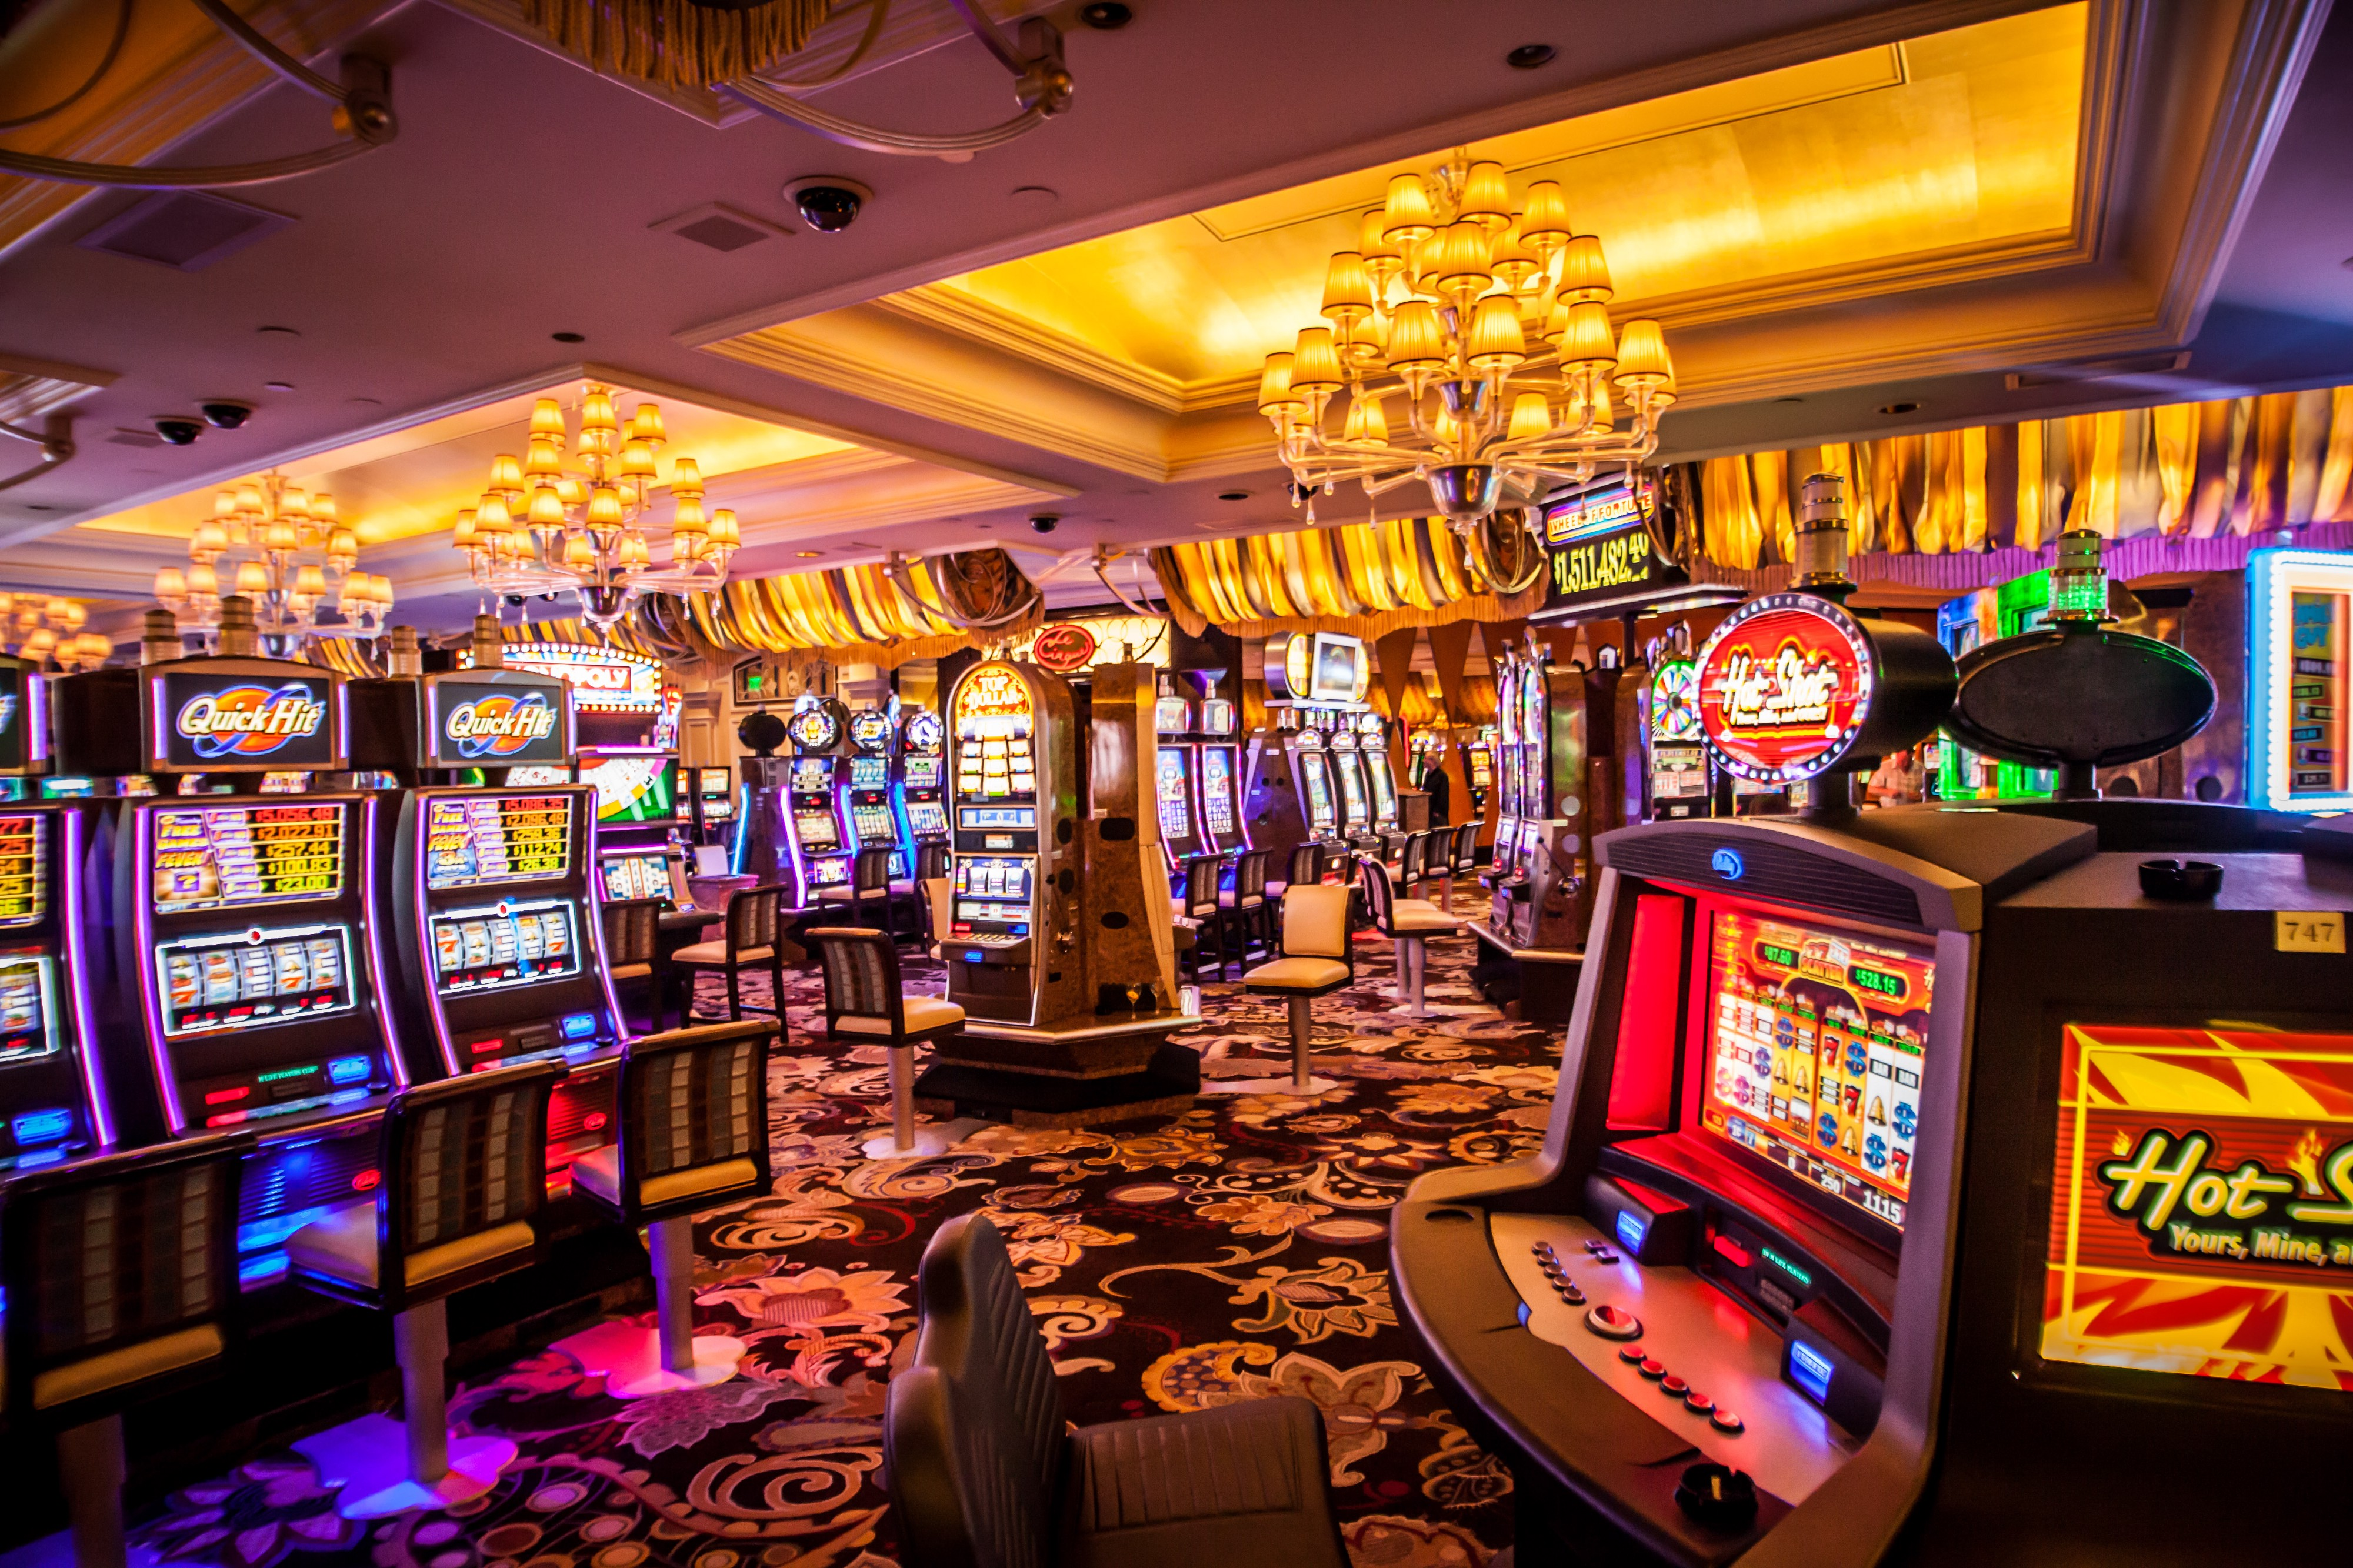 Why are blockchain users interested in online gambling? | by Lukas  Wiesflecker | DataDrivenInvestor